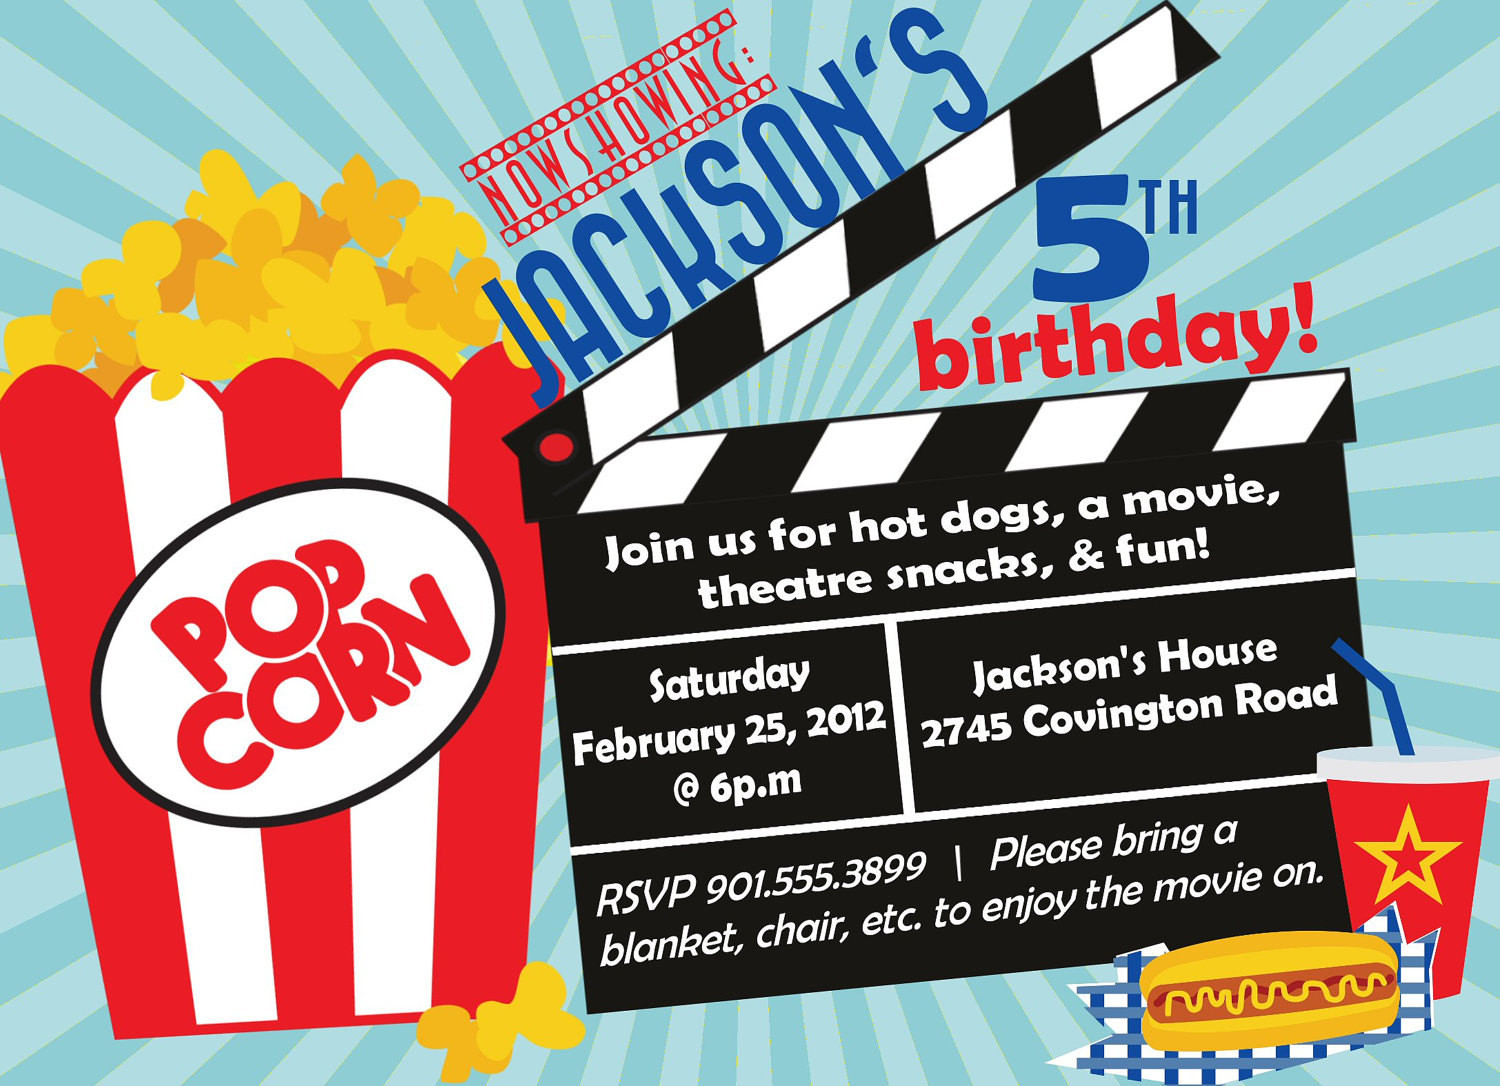 Best ideas about Movie Birthday Party Invitations . Save or Pin Movie Birthday Party Invitation Boy Birthday Invitation Now.